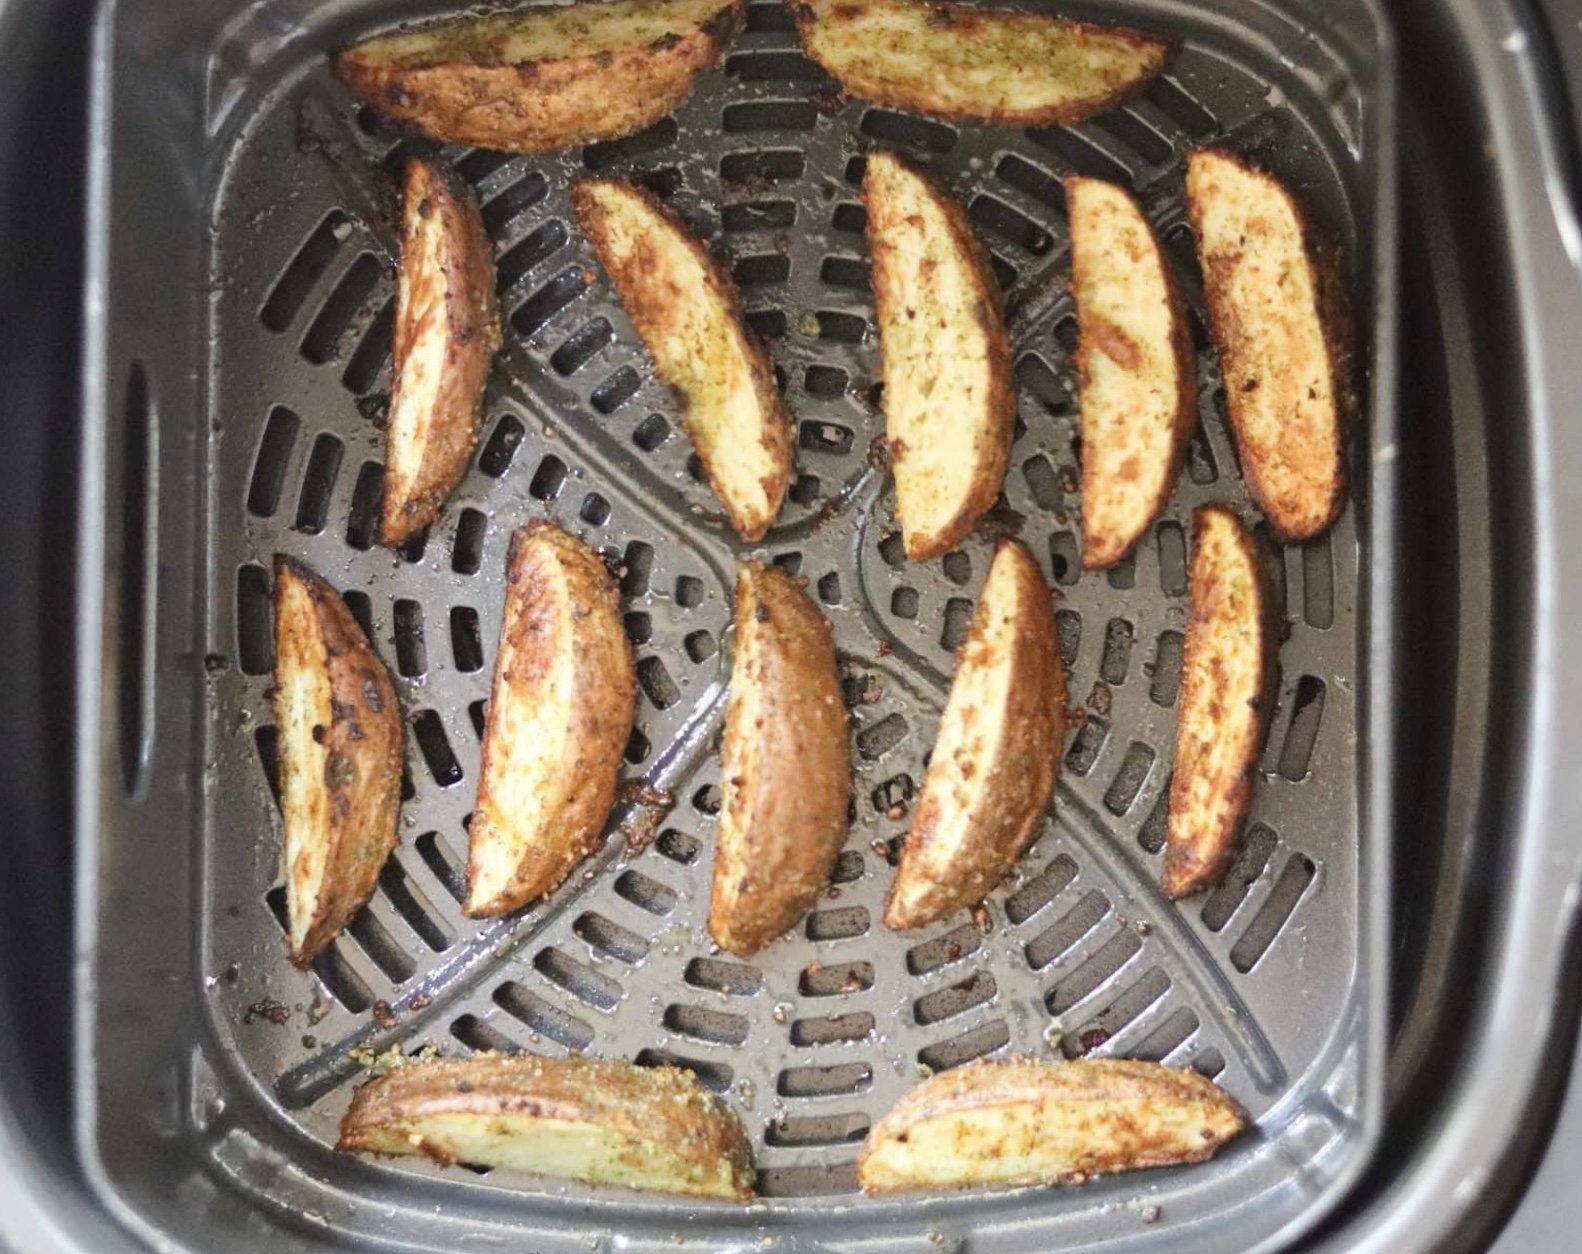 Cooked potato wedges inside the air fryer basket.